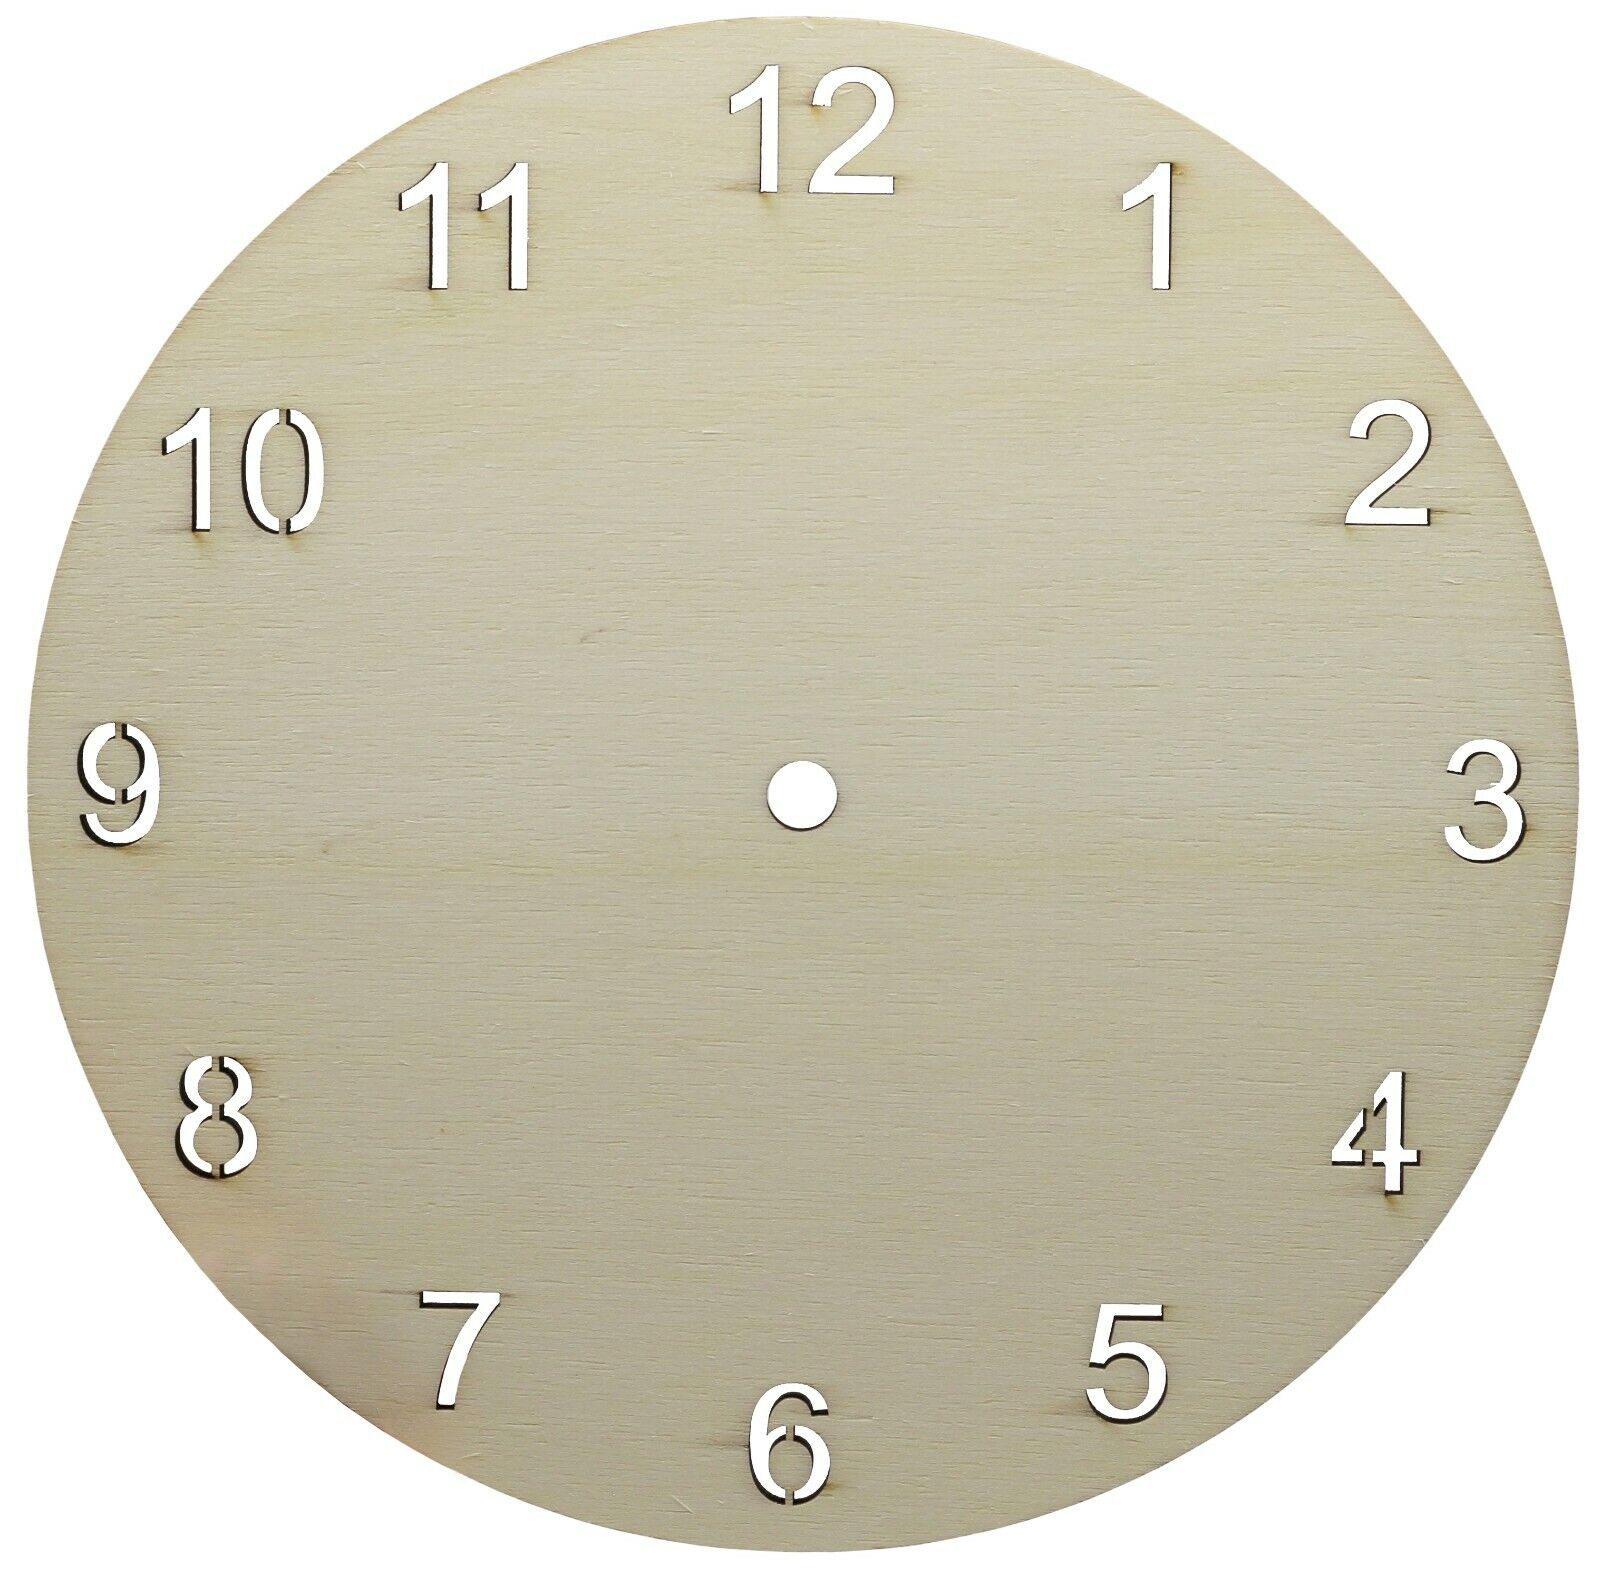 9″ Round Clock Face for Crafts, DIY Unfinished Wood Clock Blank – Make Your Own Crafts